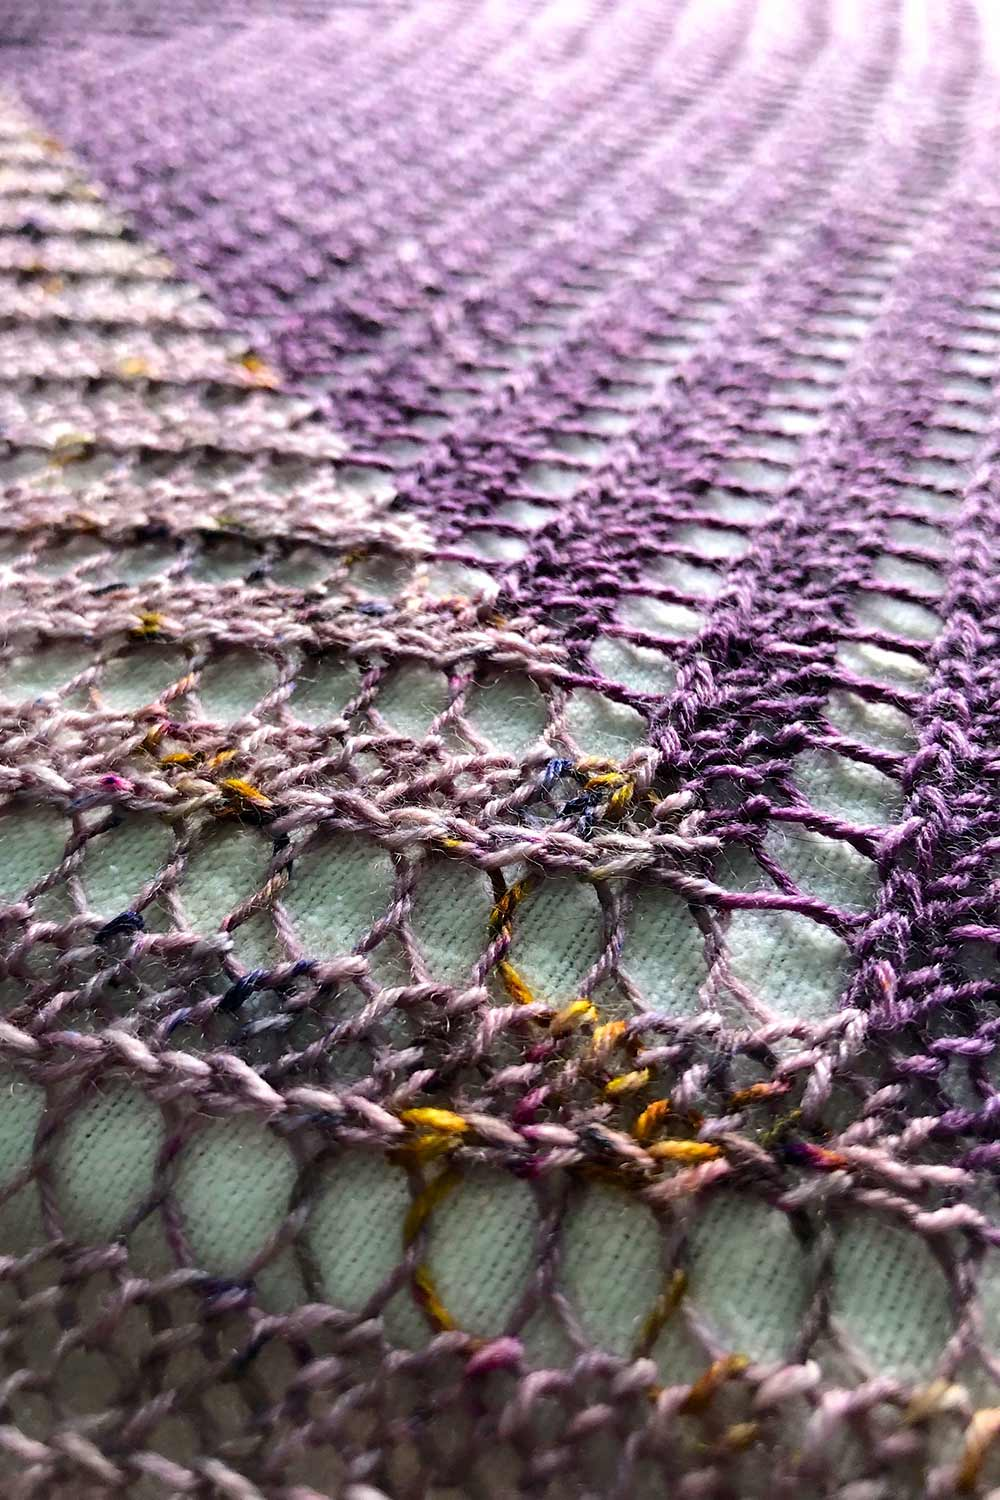 Detail shot of lines of lace changing directions when the colour changes.